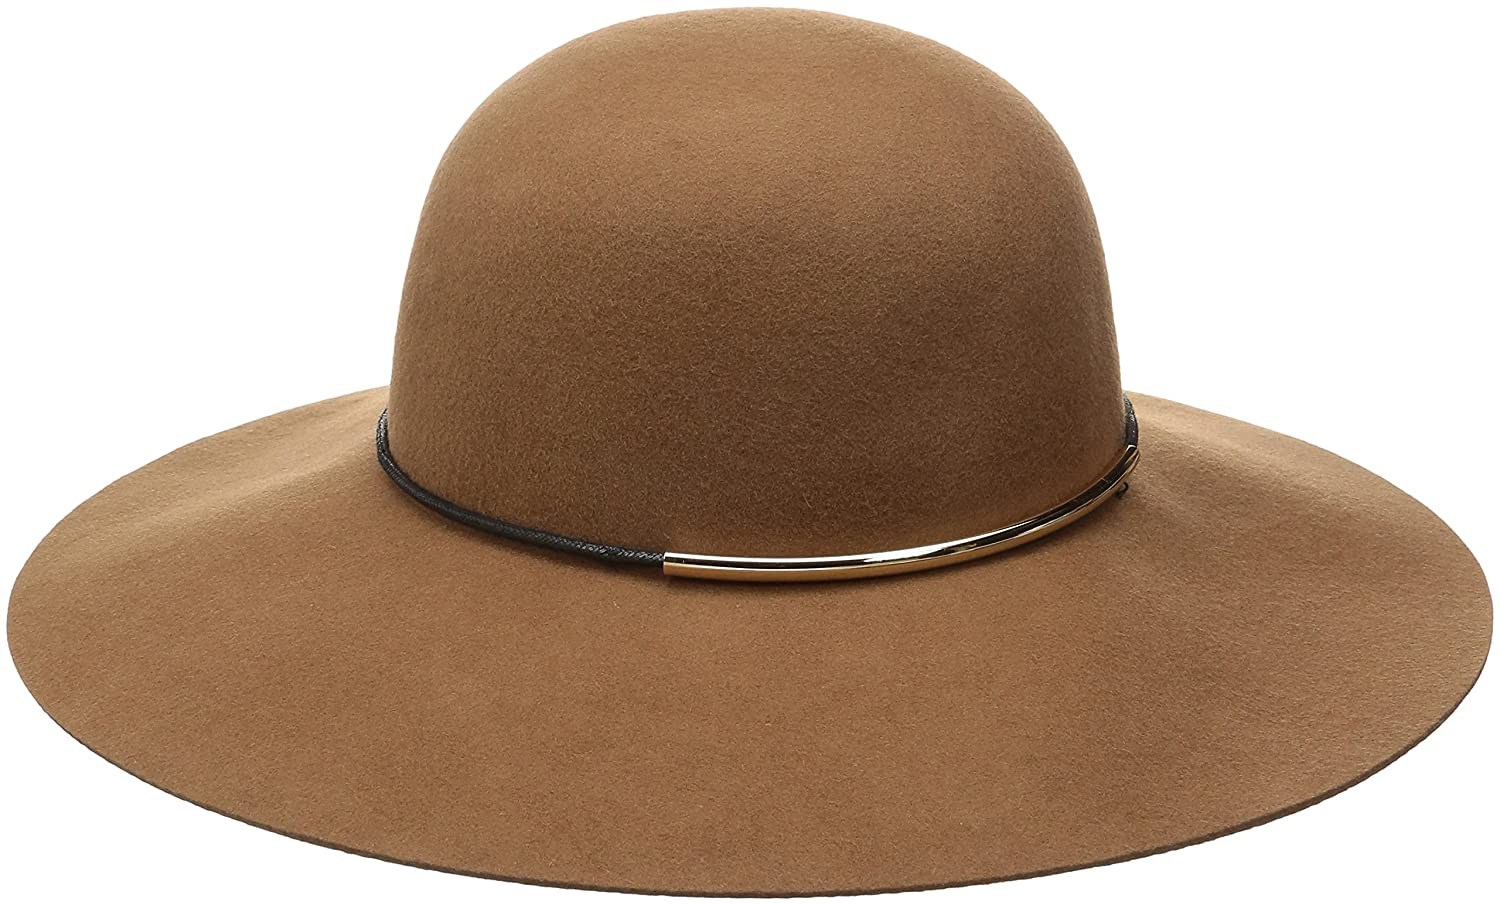 465692657c0 Top3  Nine West Women s Felt Floppy Hat With Metal Tube